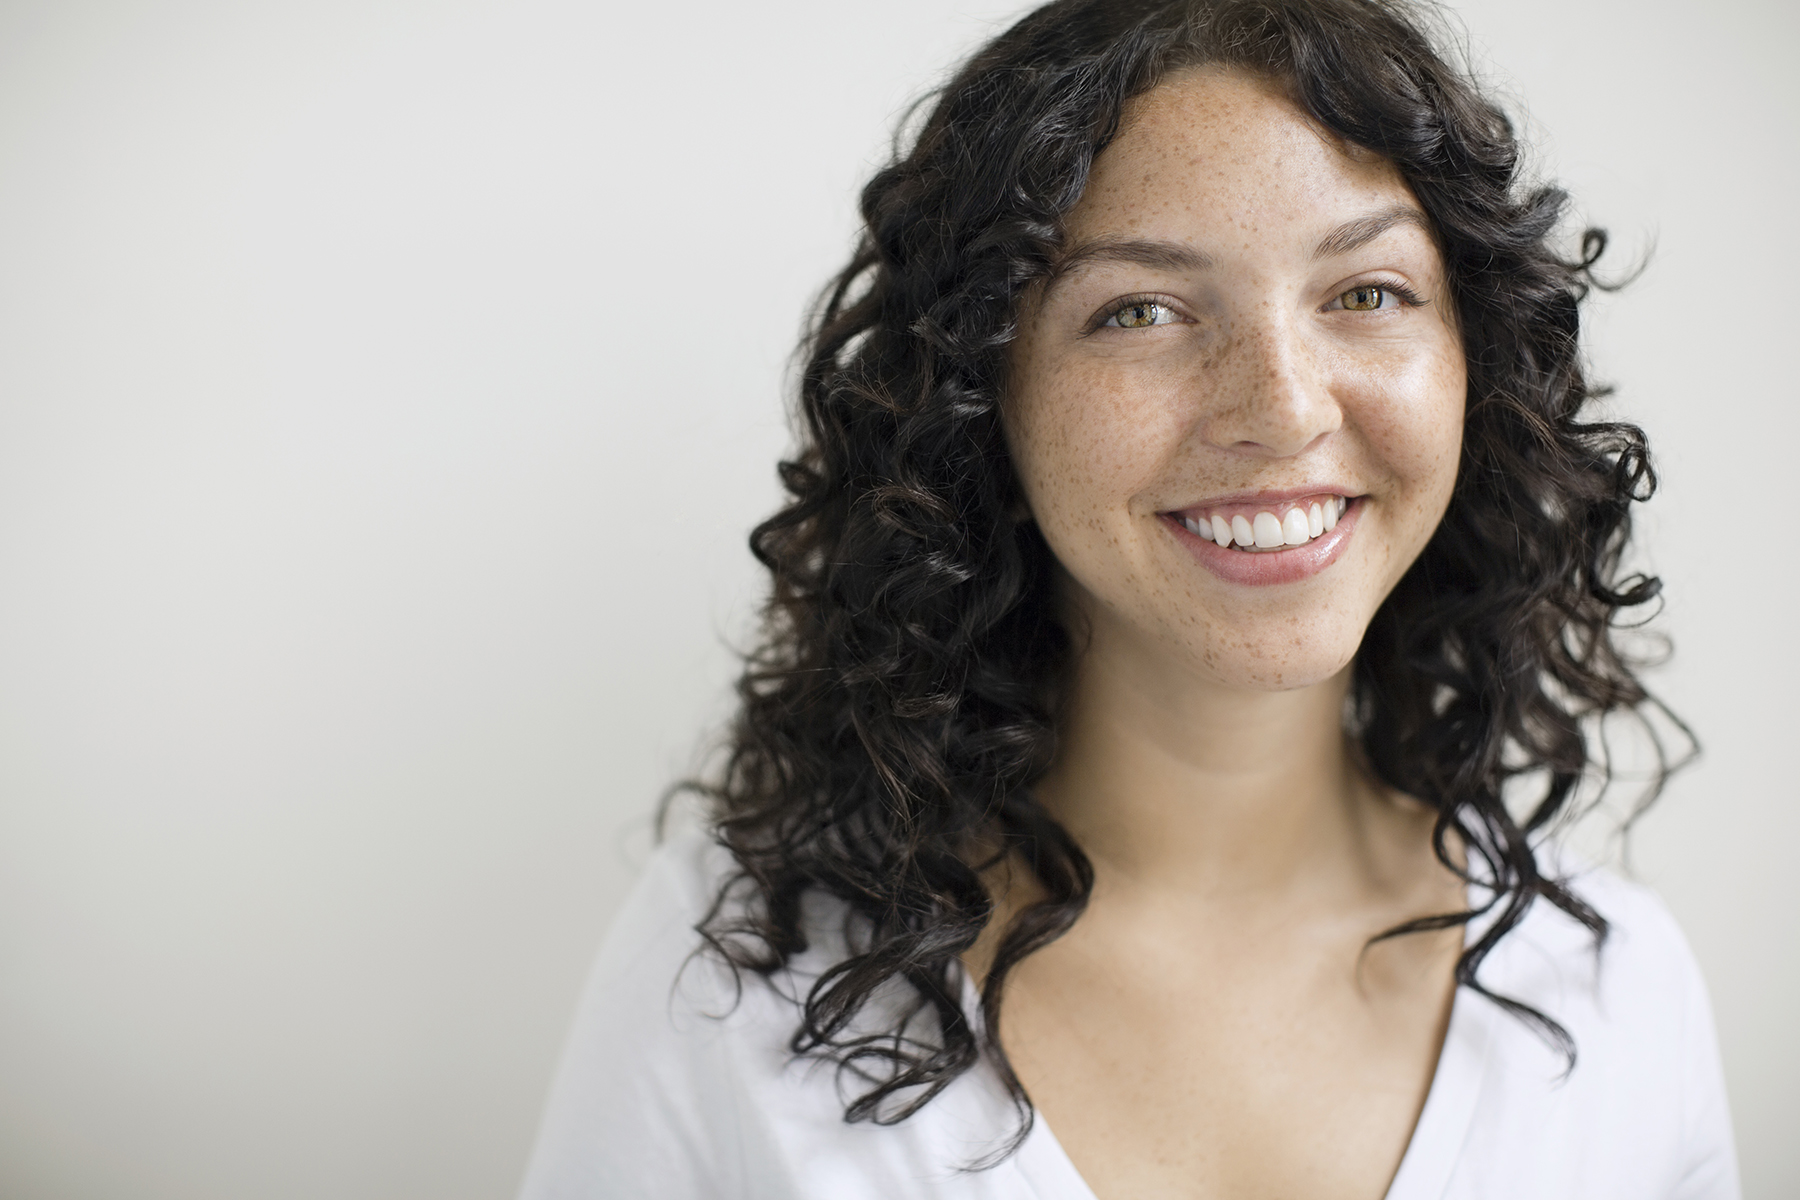 Woman with freckles and dark curly hair